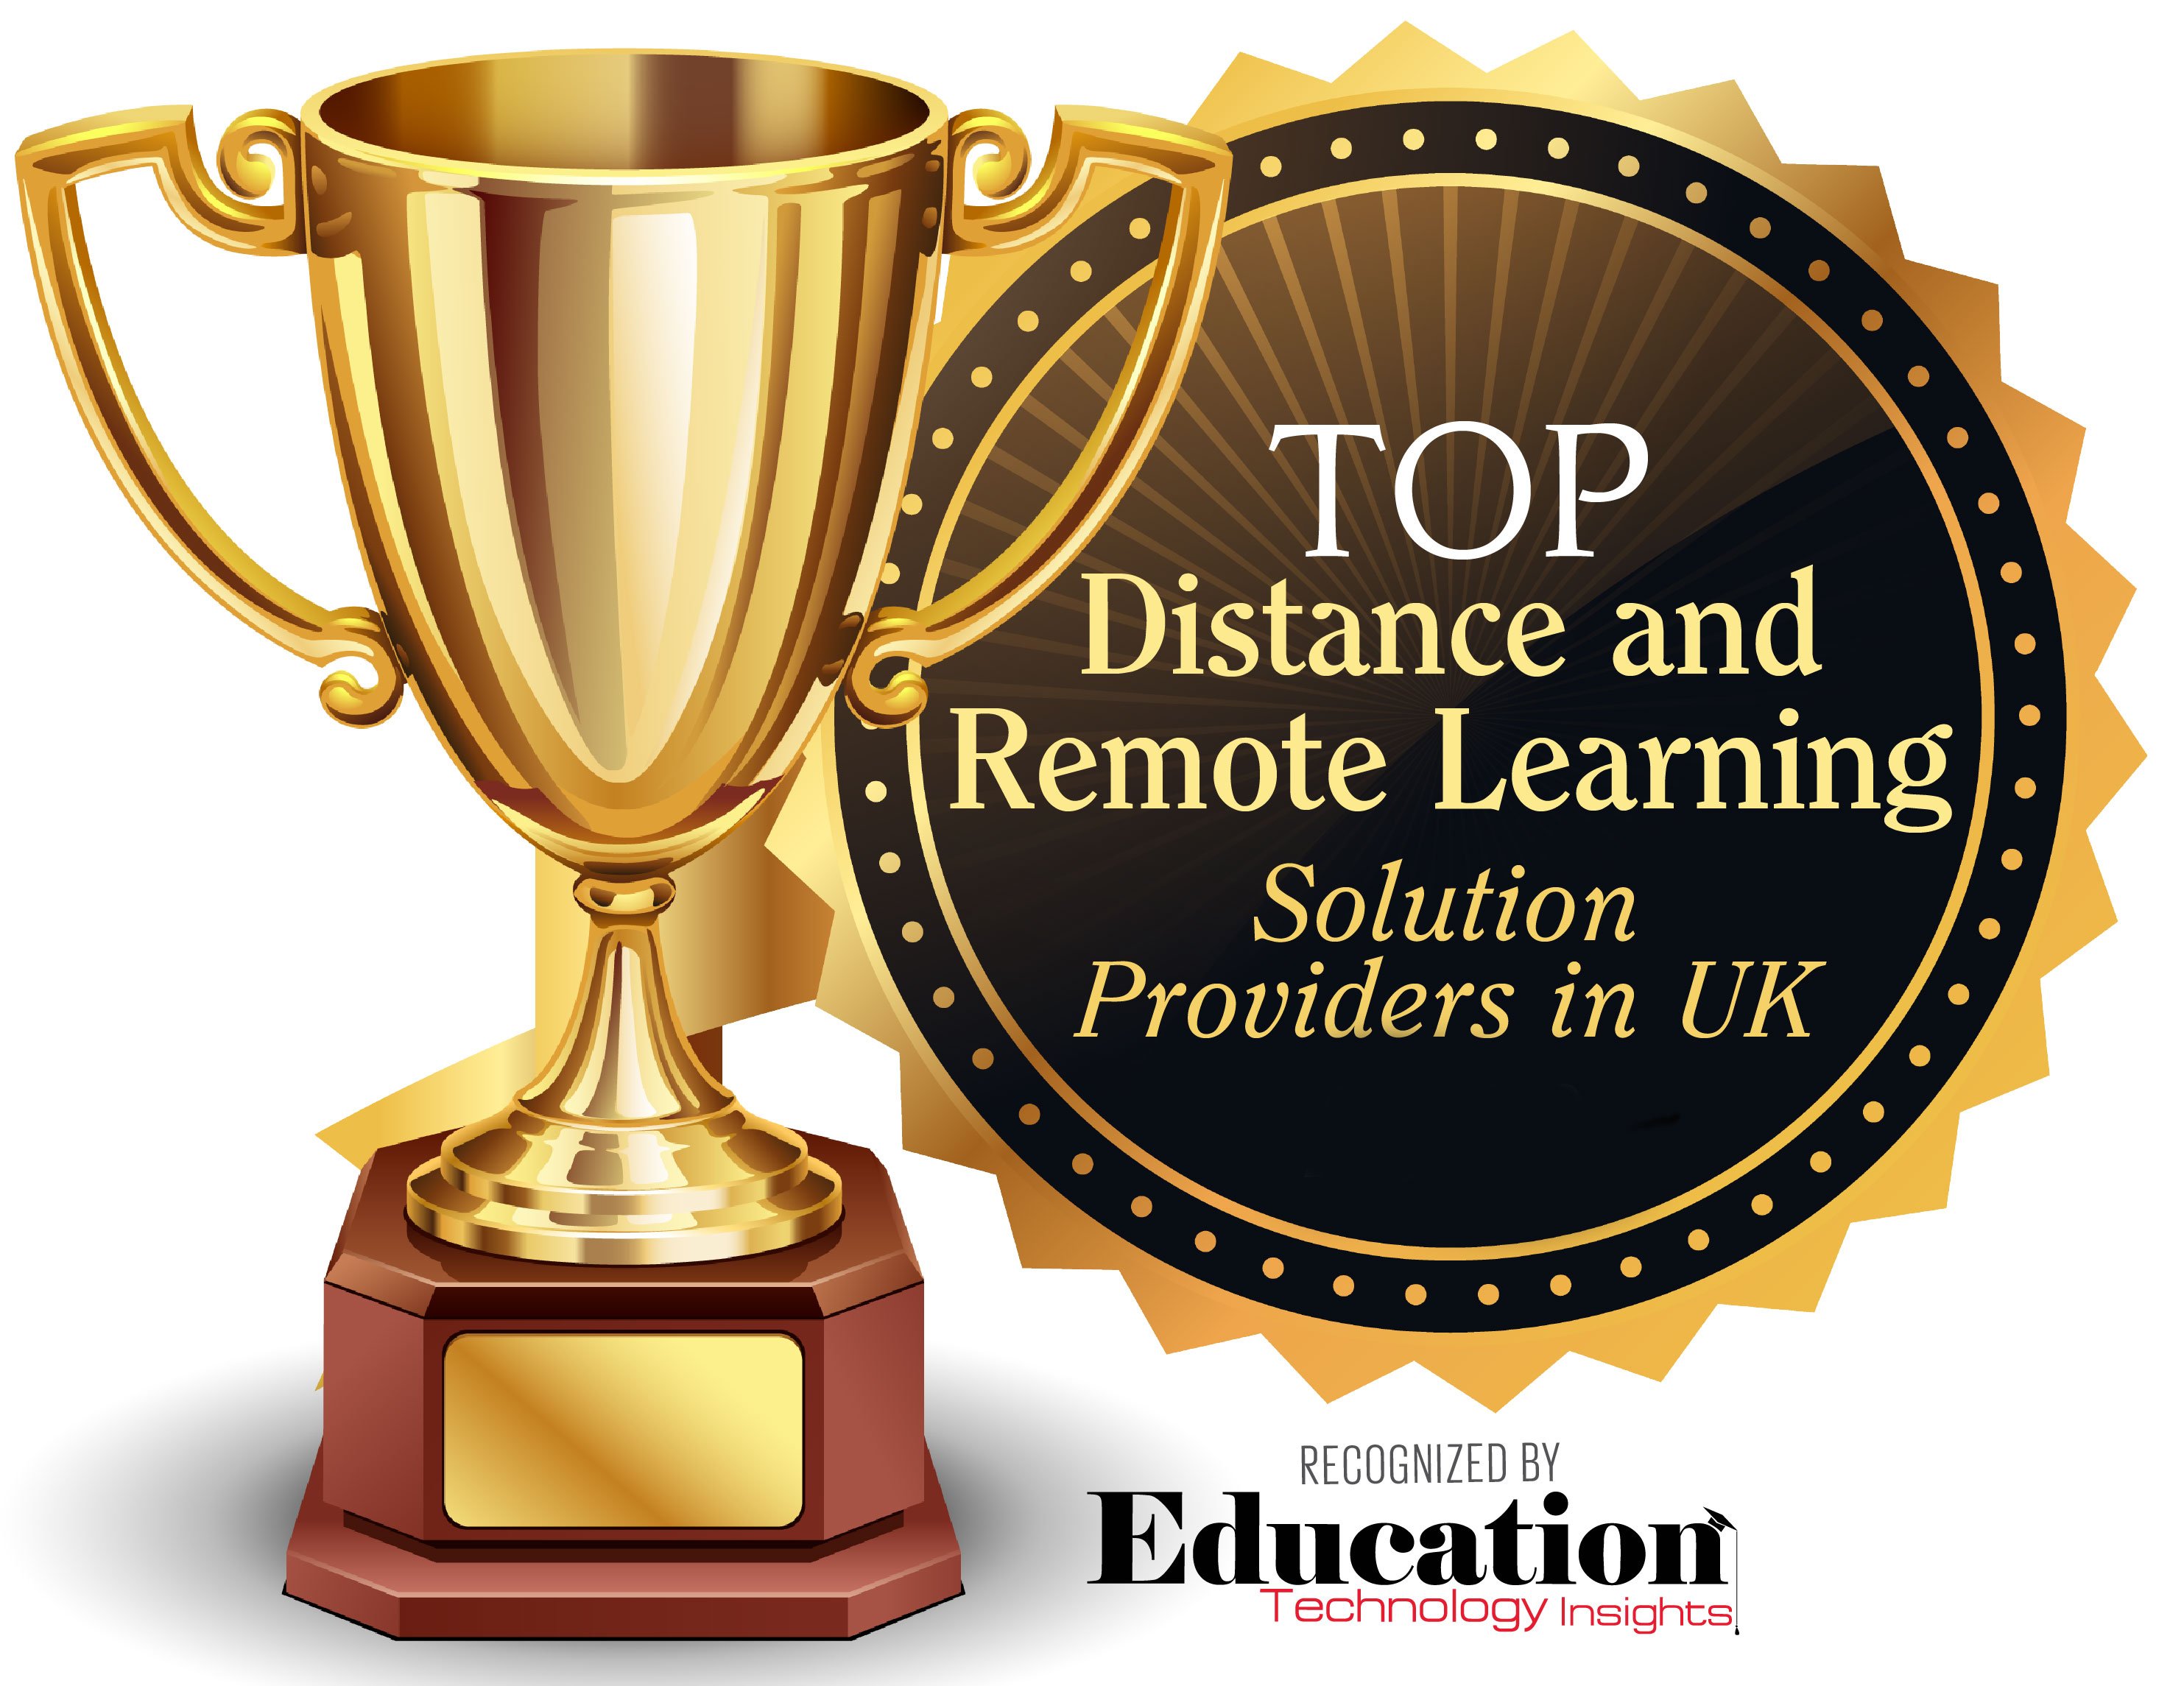 Top 10 Distance and Remote Learning Solution Companies in UK - 2020